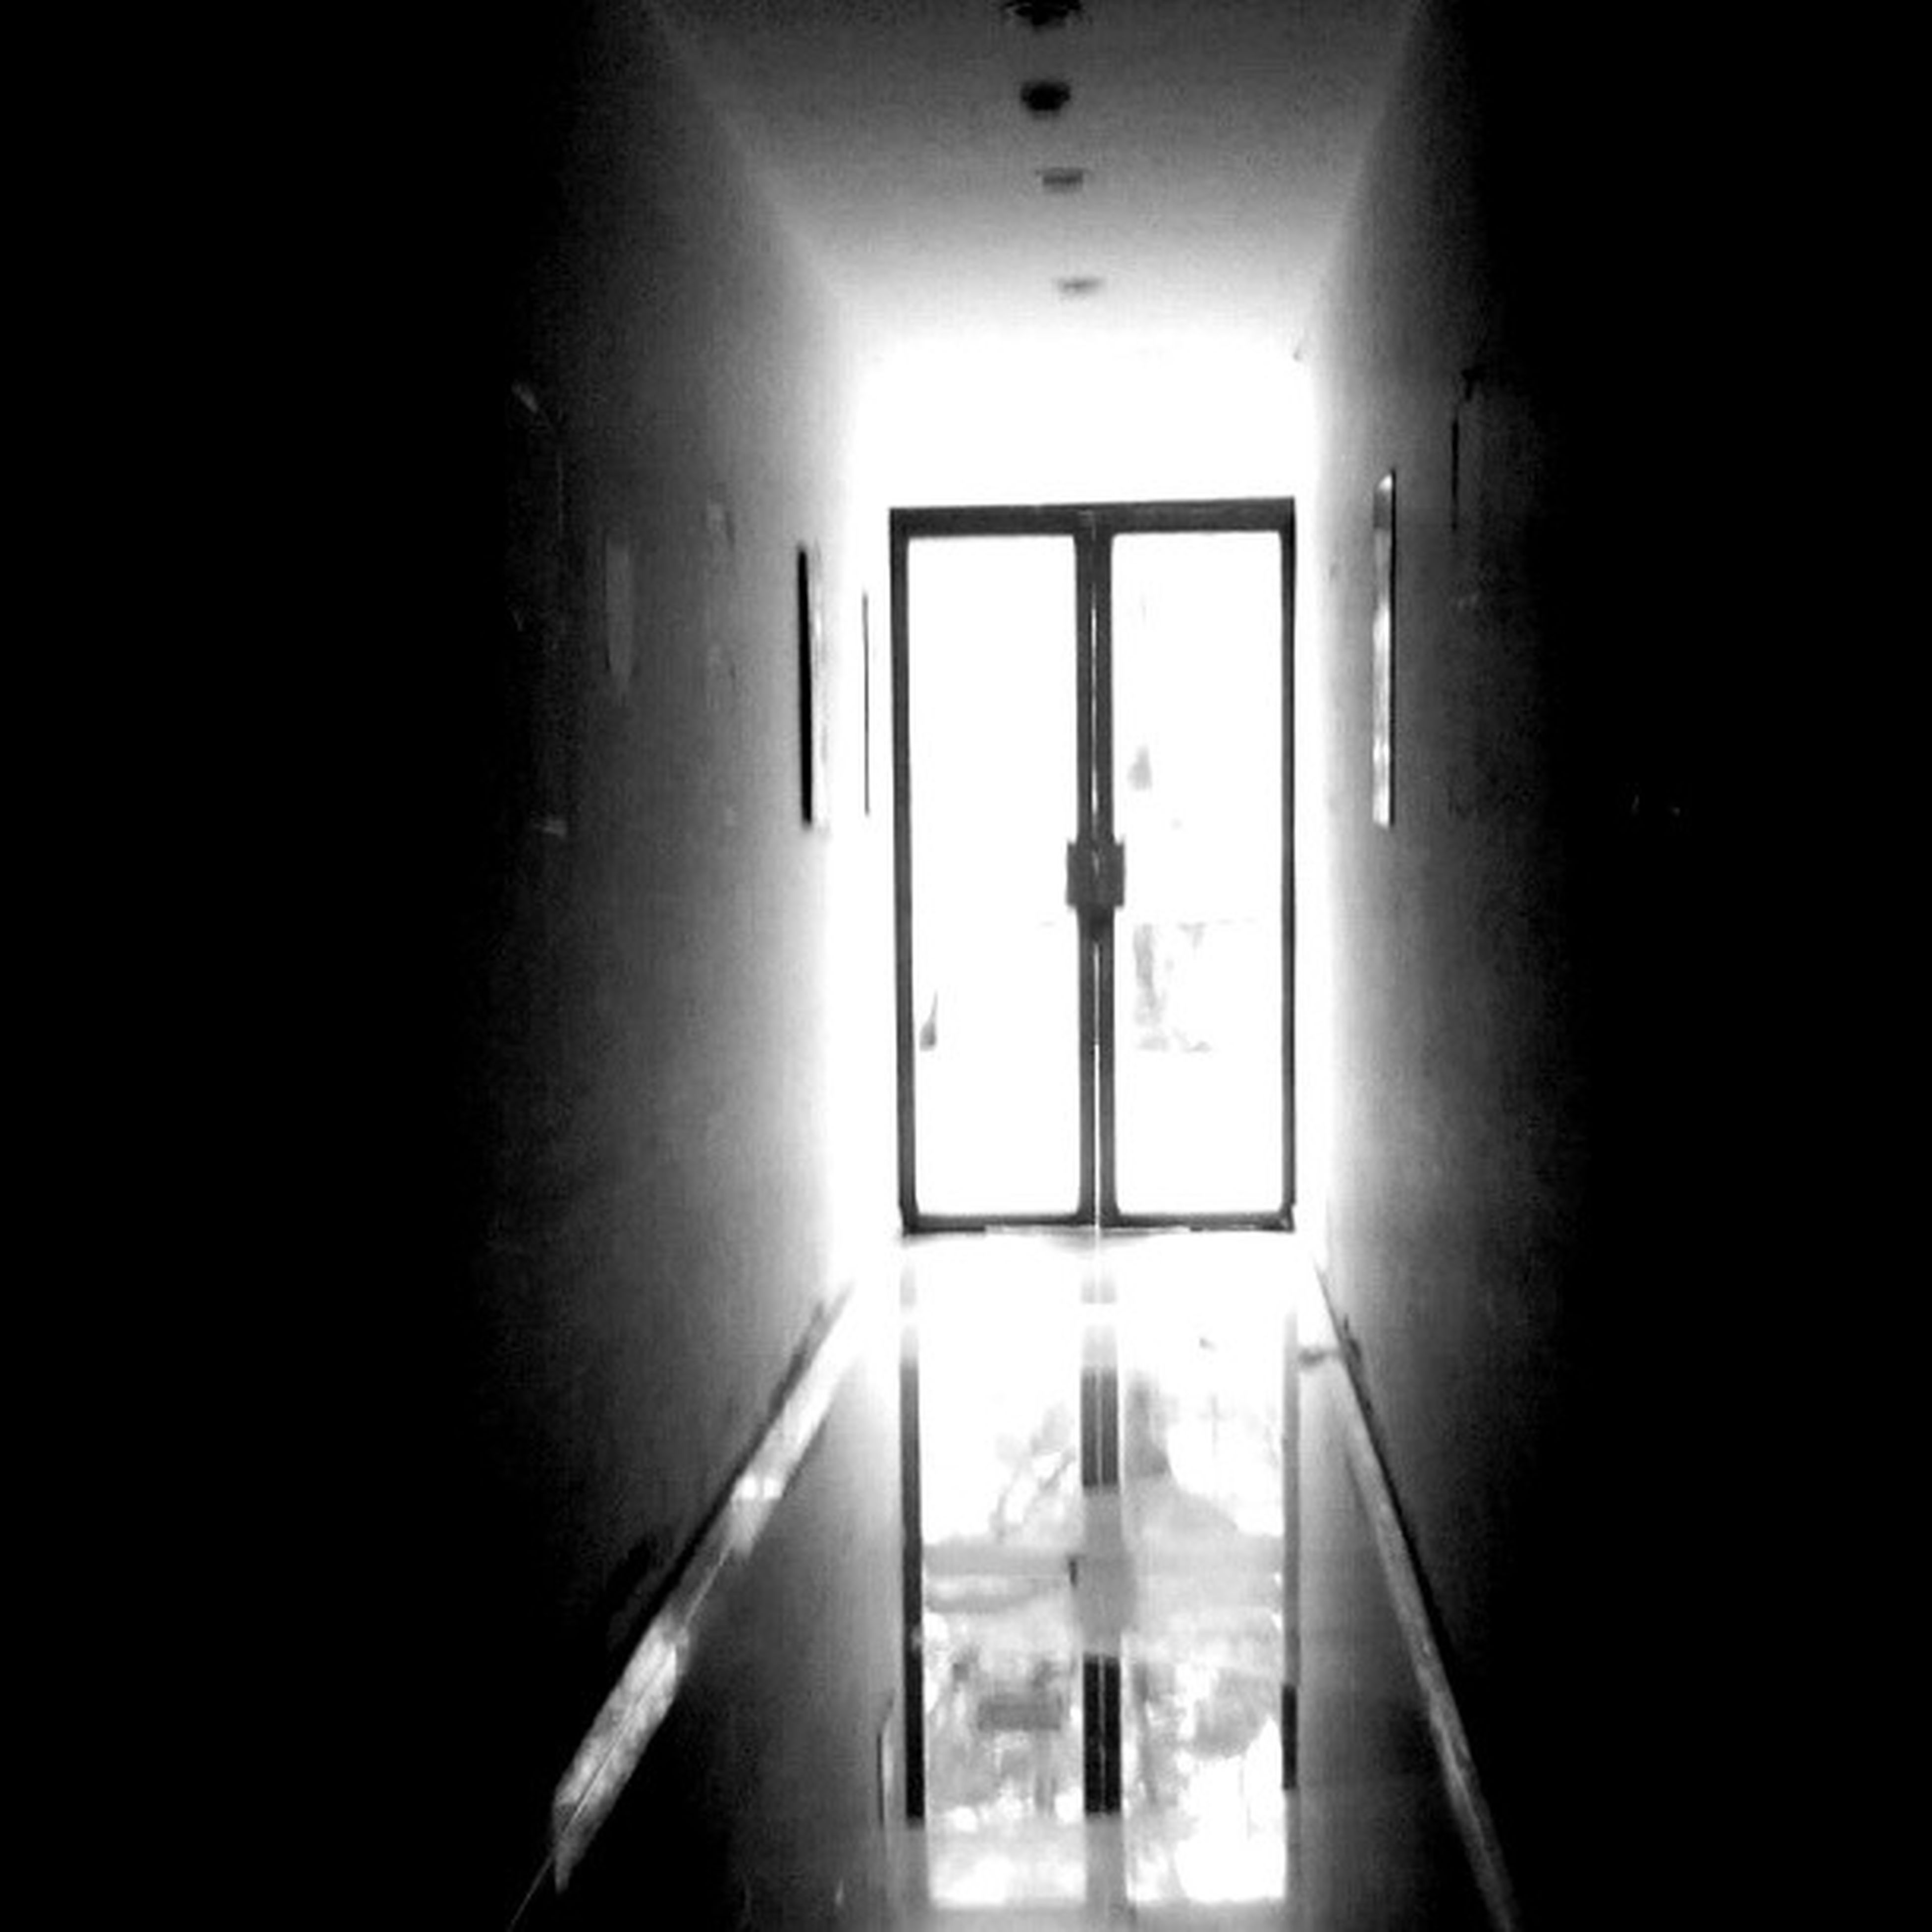 indoors, illuminated, window, door, wall - building feature, built structure, dark, architecture, corridor, lighting equipment, home interior, wall, light - natural phenomenon, house, sunlight, room, domestic room, doorway, one person, the way forward